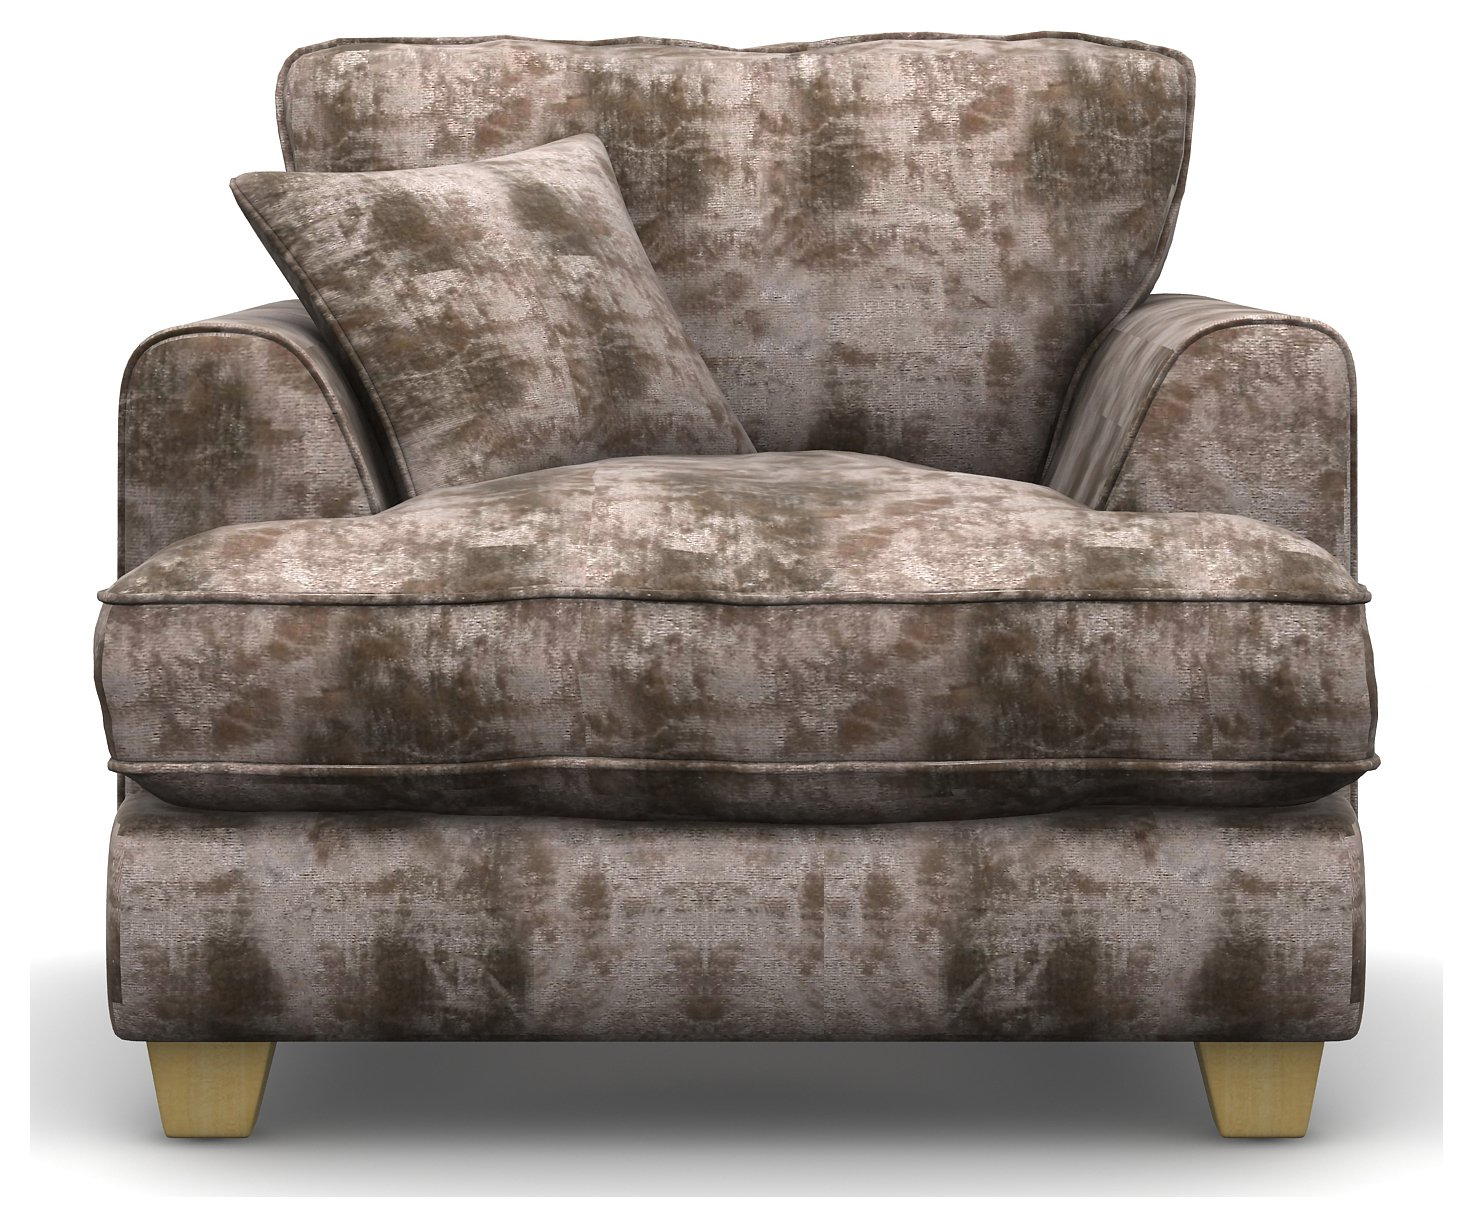 Heart of House Hampstead Shimmer Fabric Chair - Mink